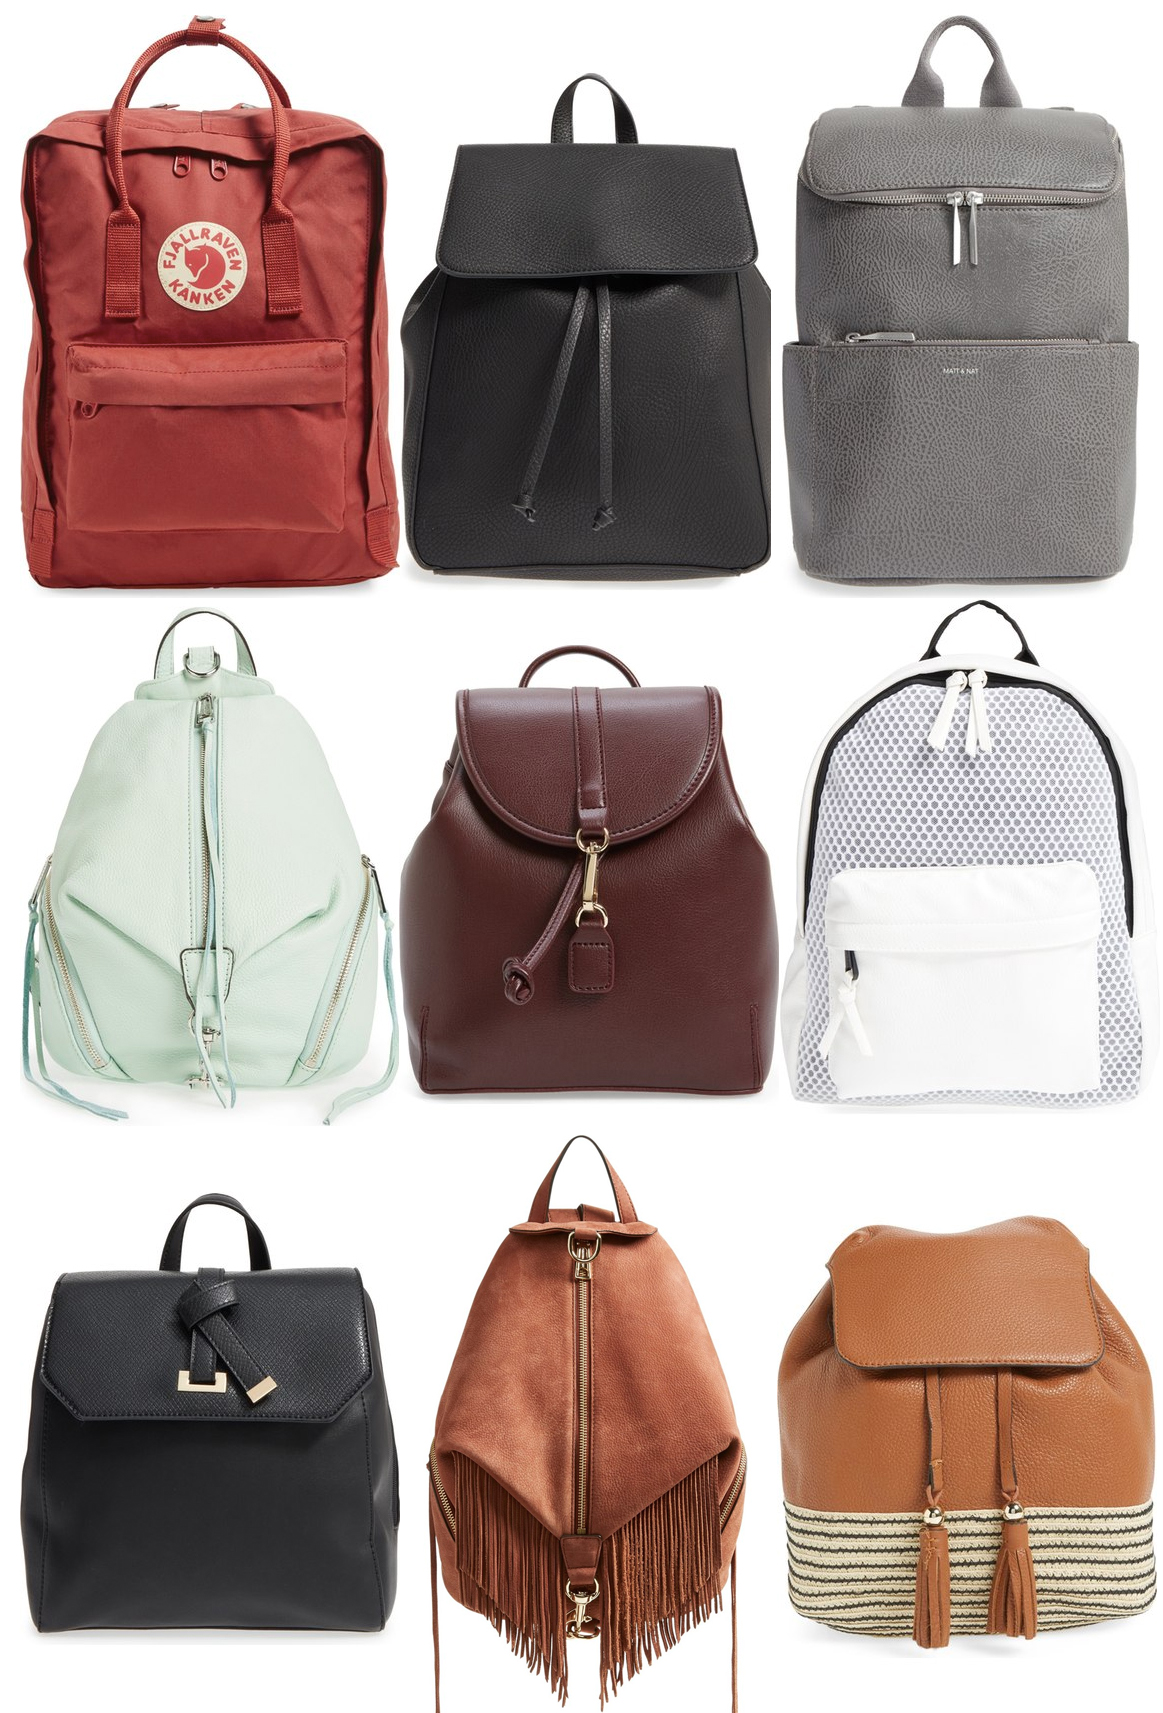 Nordstrom Backpack Roundup